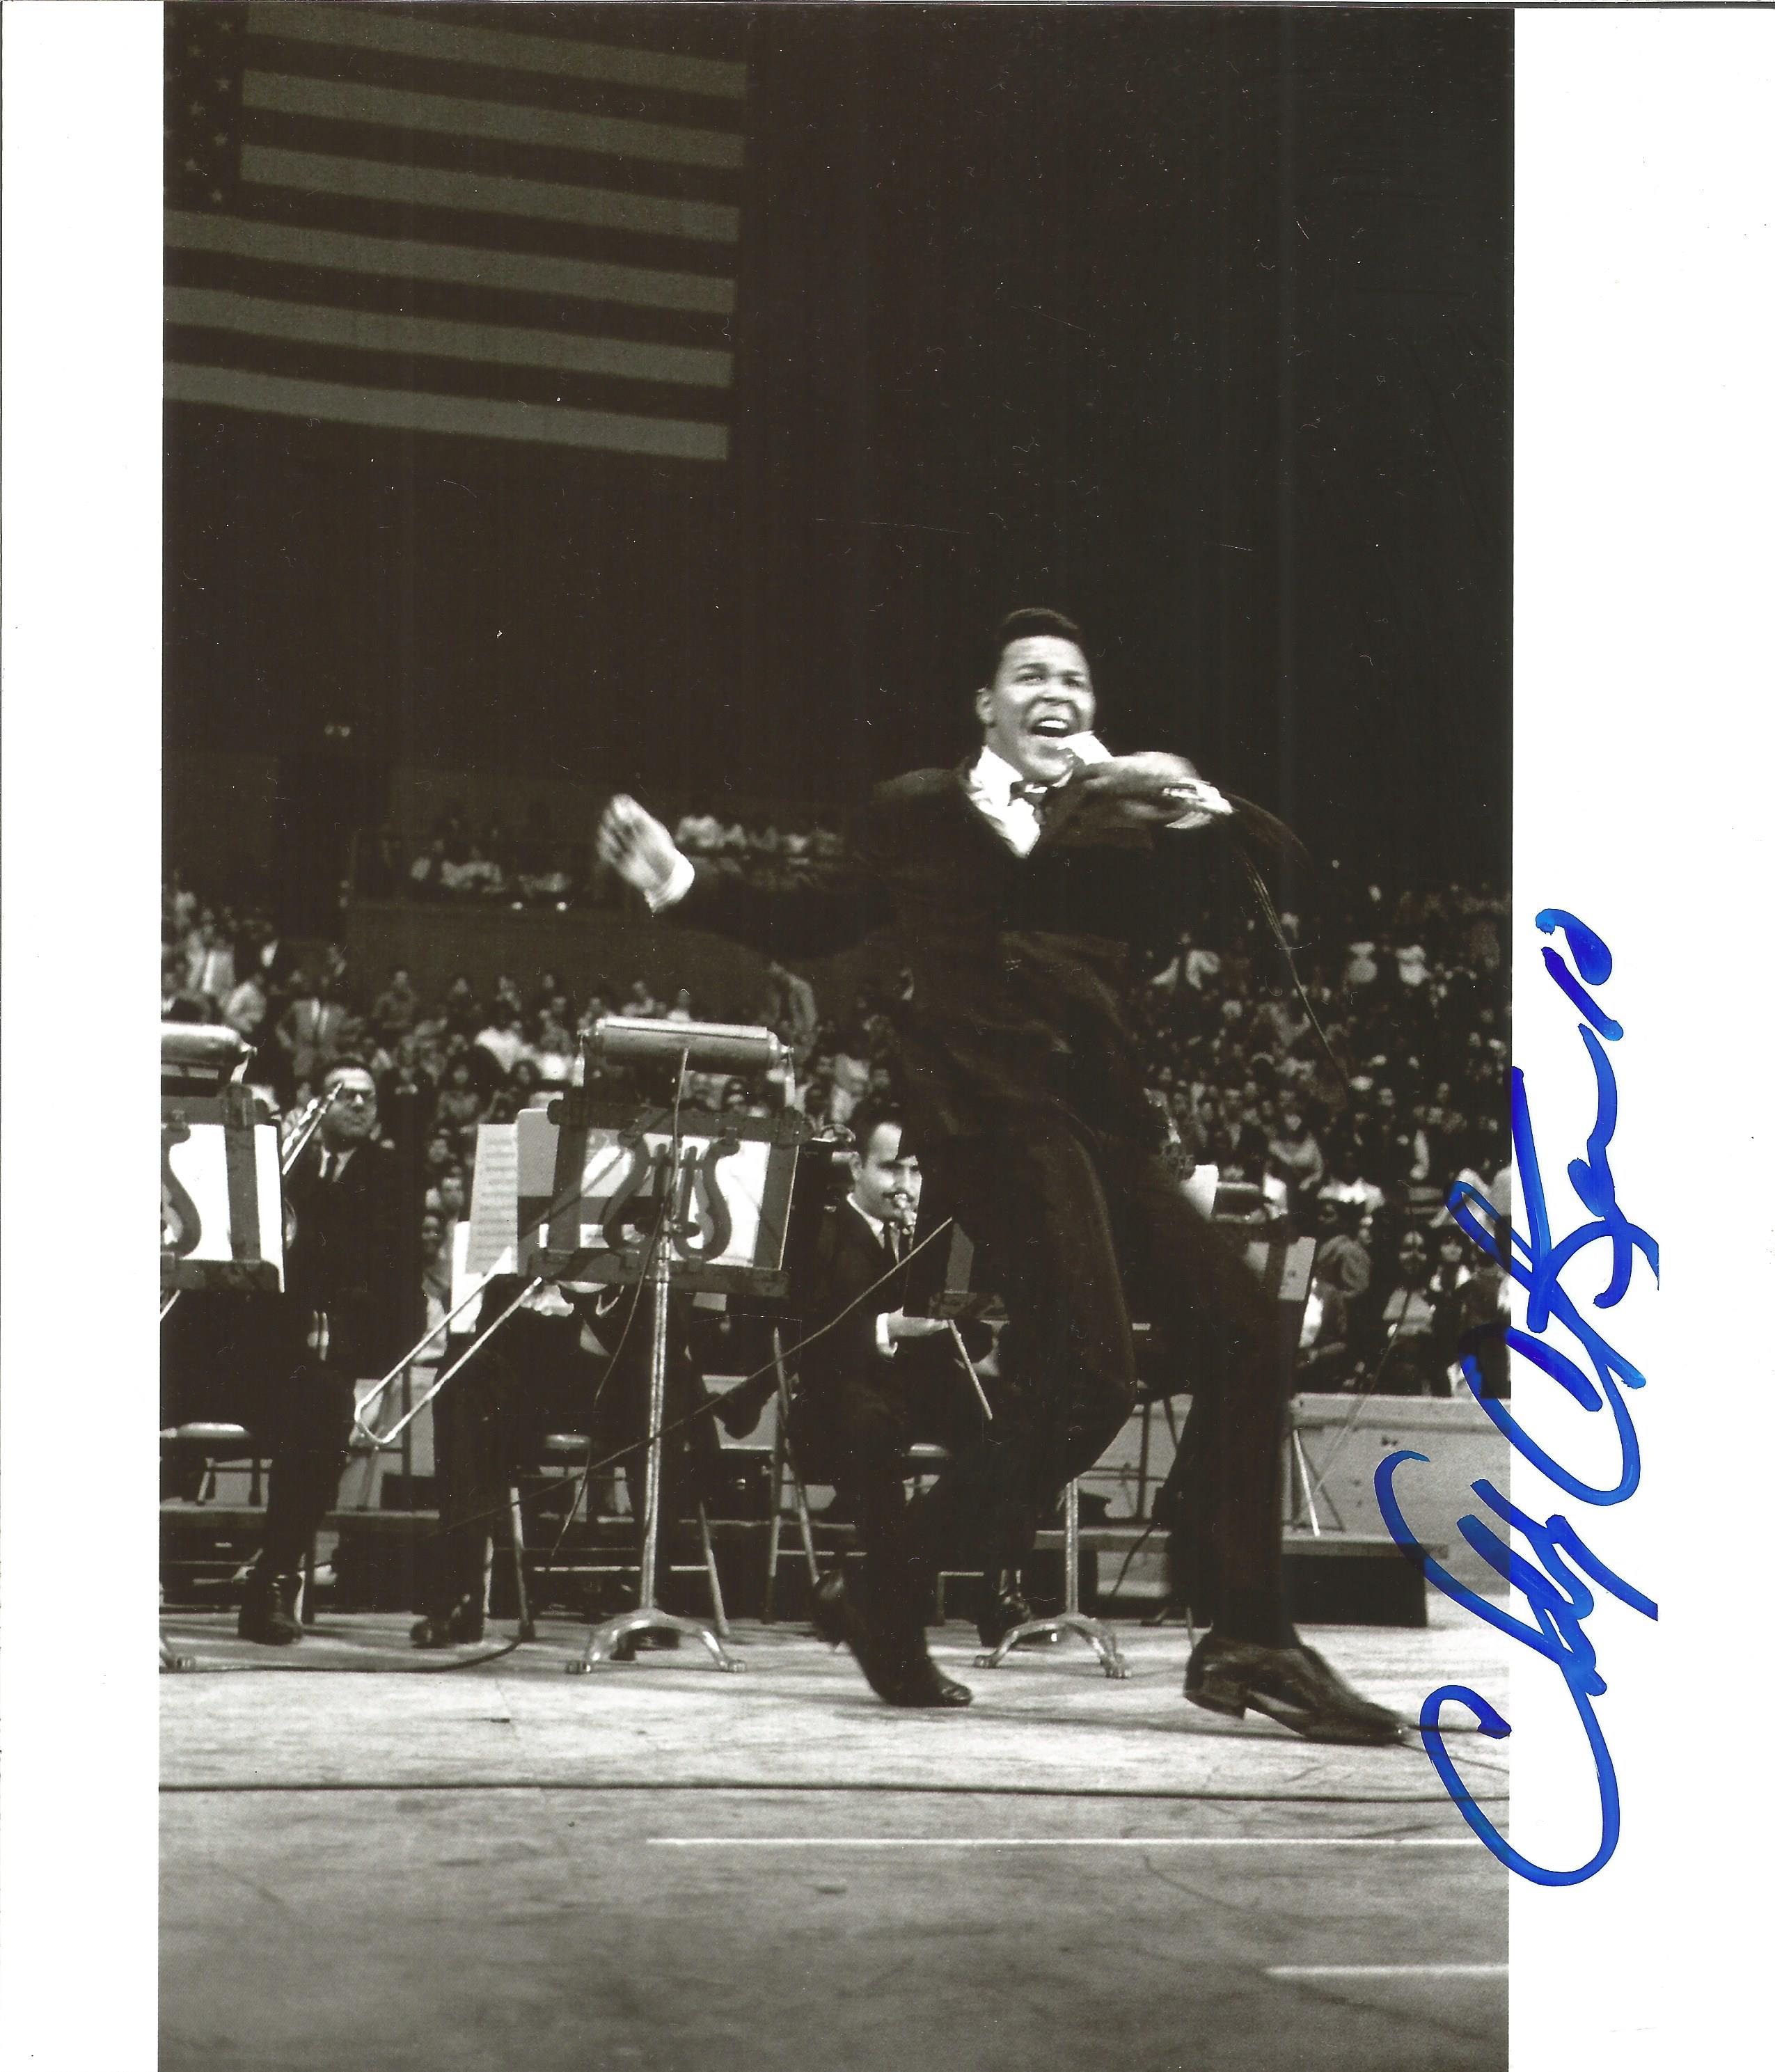 Chubby Checker signed 10x8 black and white photo. Chubby Checker (born Ernest Evans; October 3,